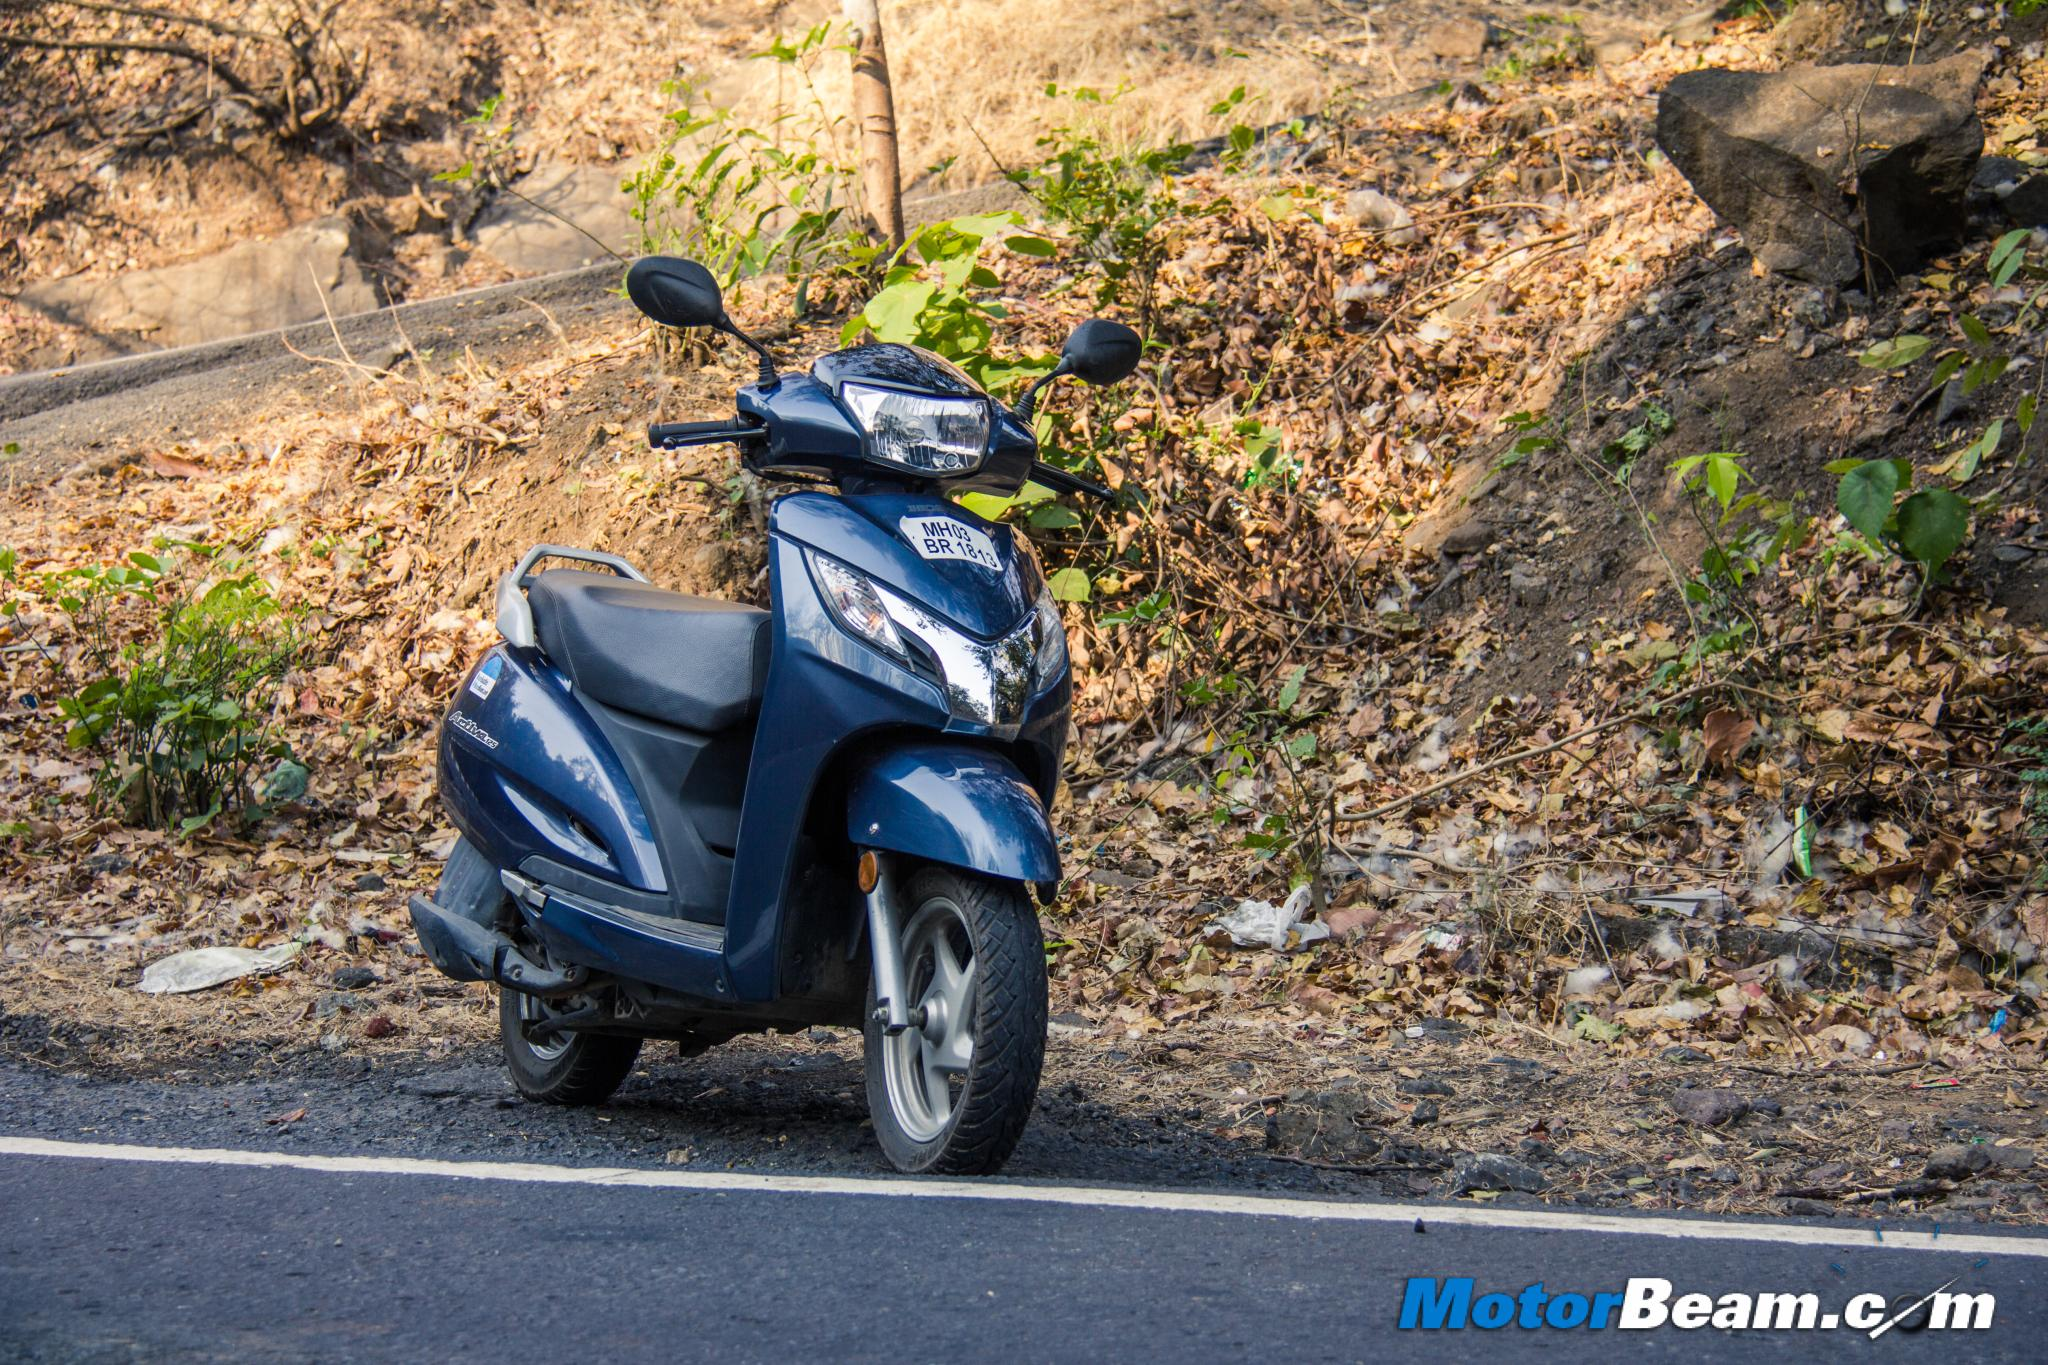 Honda Activa 125 Long Term